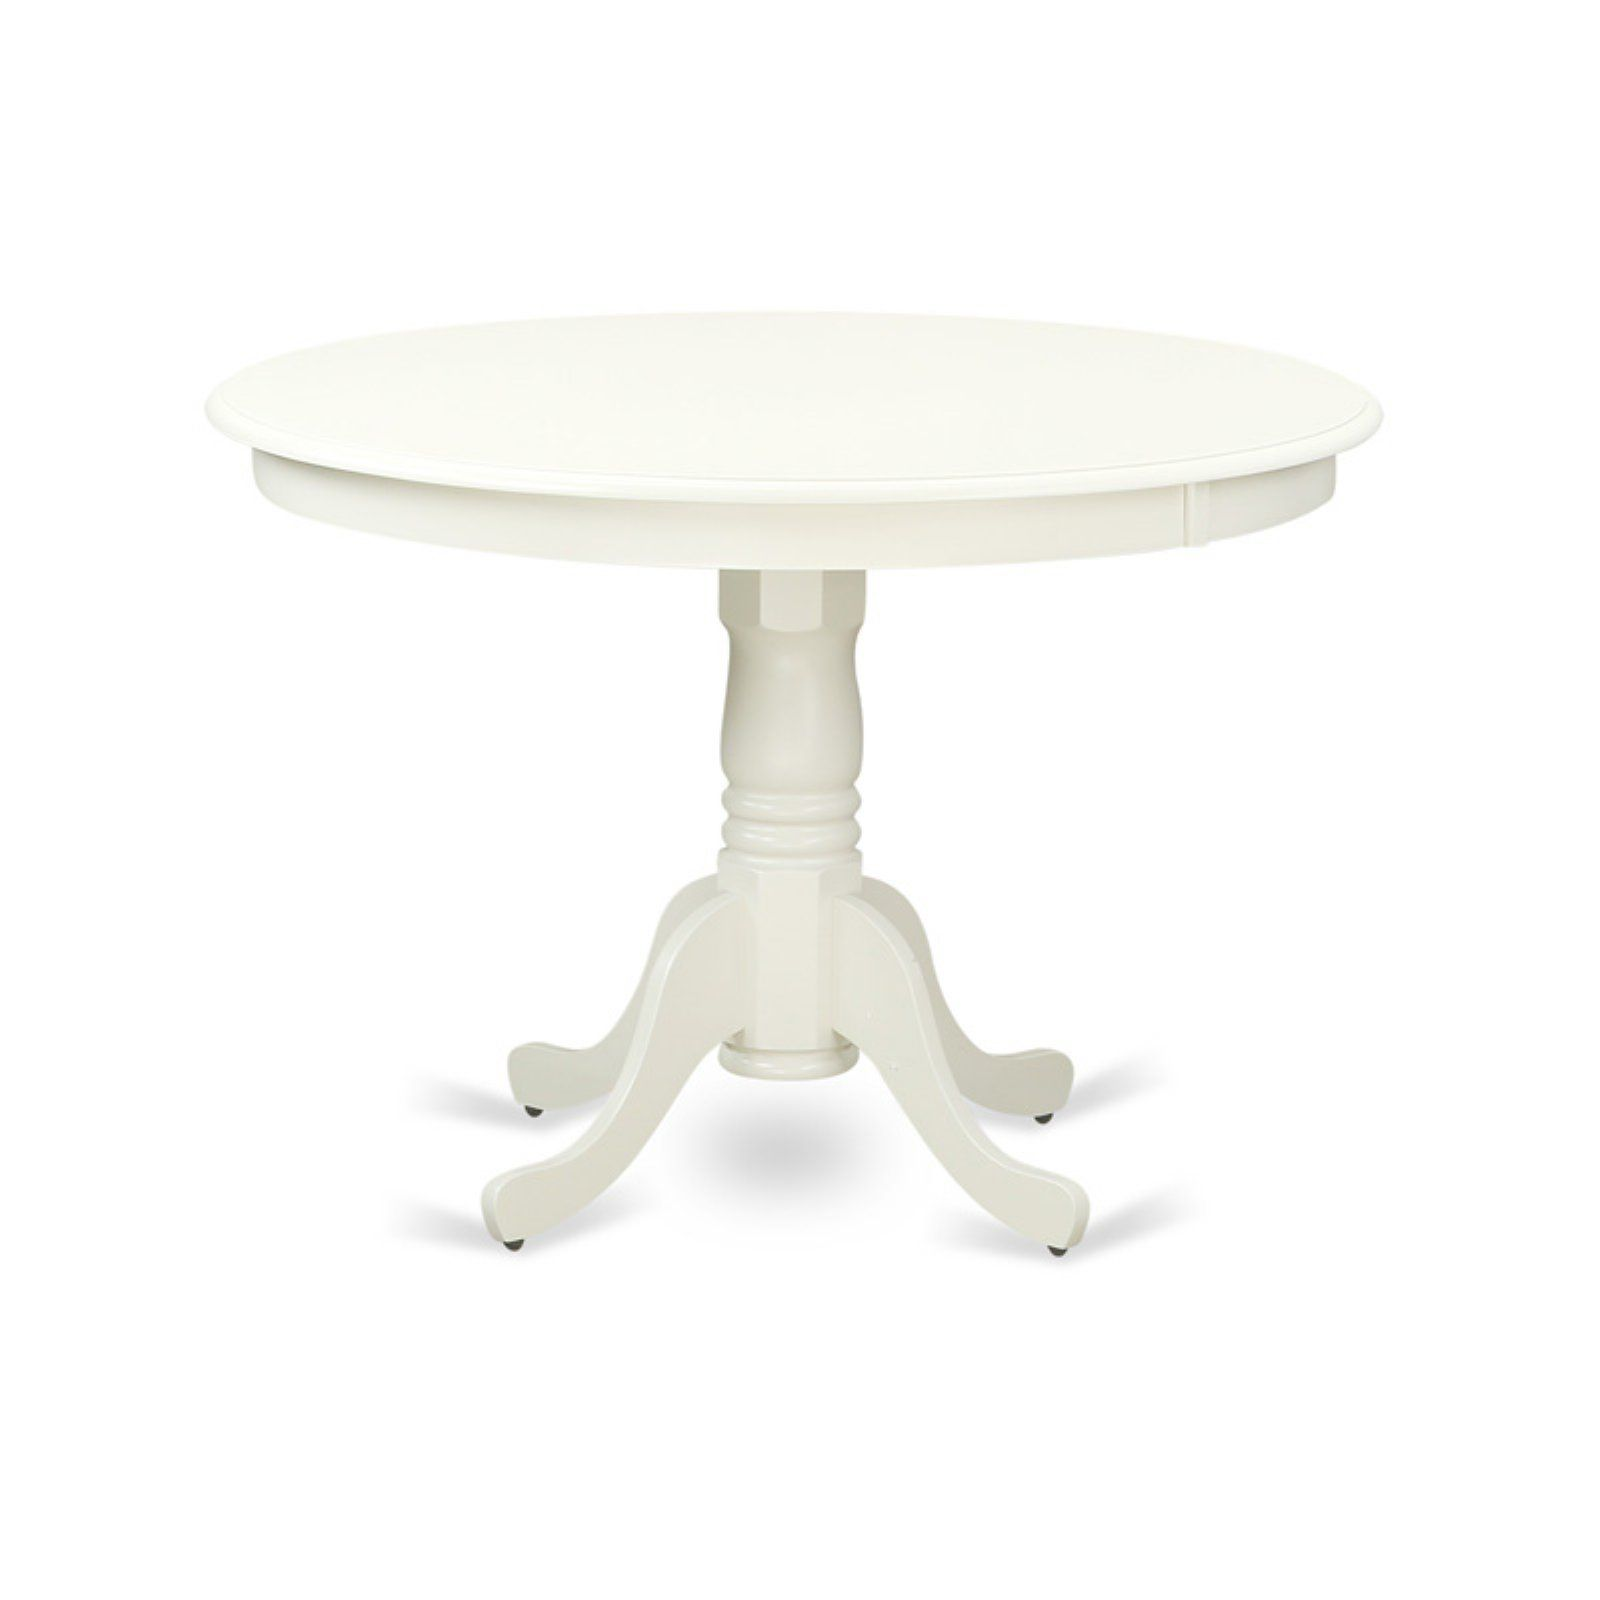 East West Furniture Hartland 42 Inch Round Pedestal Dining Table Dining Table Dining Table In Kitchen Wood Dining Table